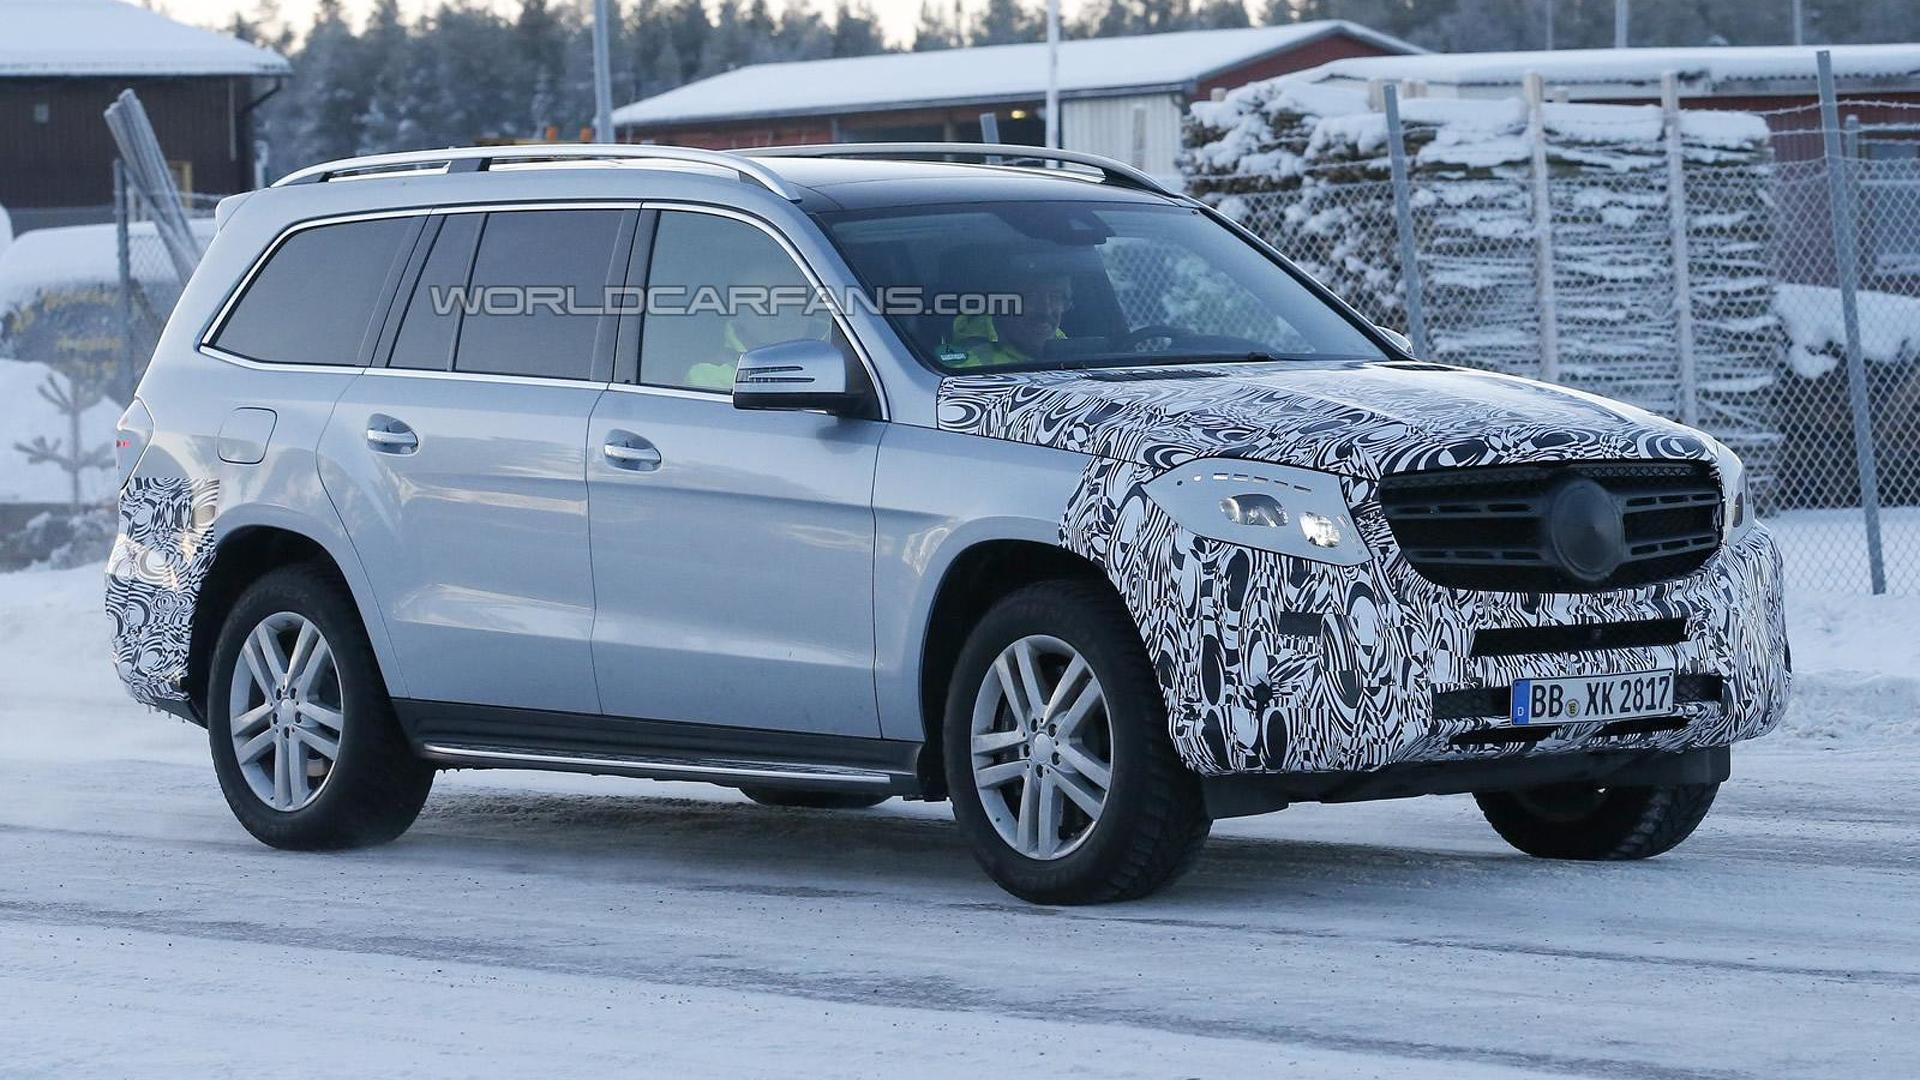 Mercedes to renew 'almost its entire range' of crossovers in 2015